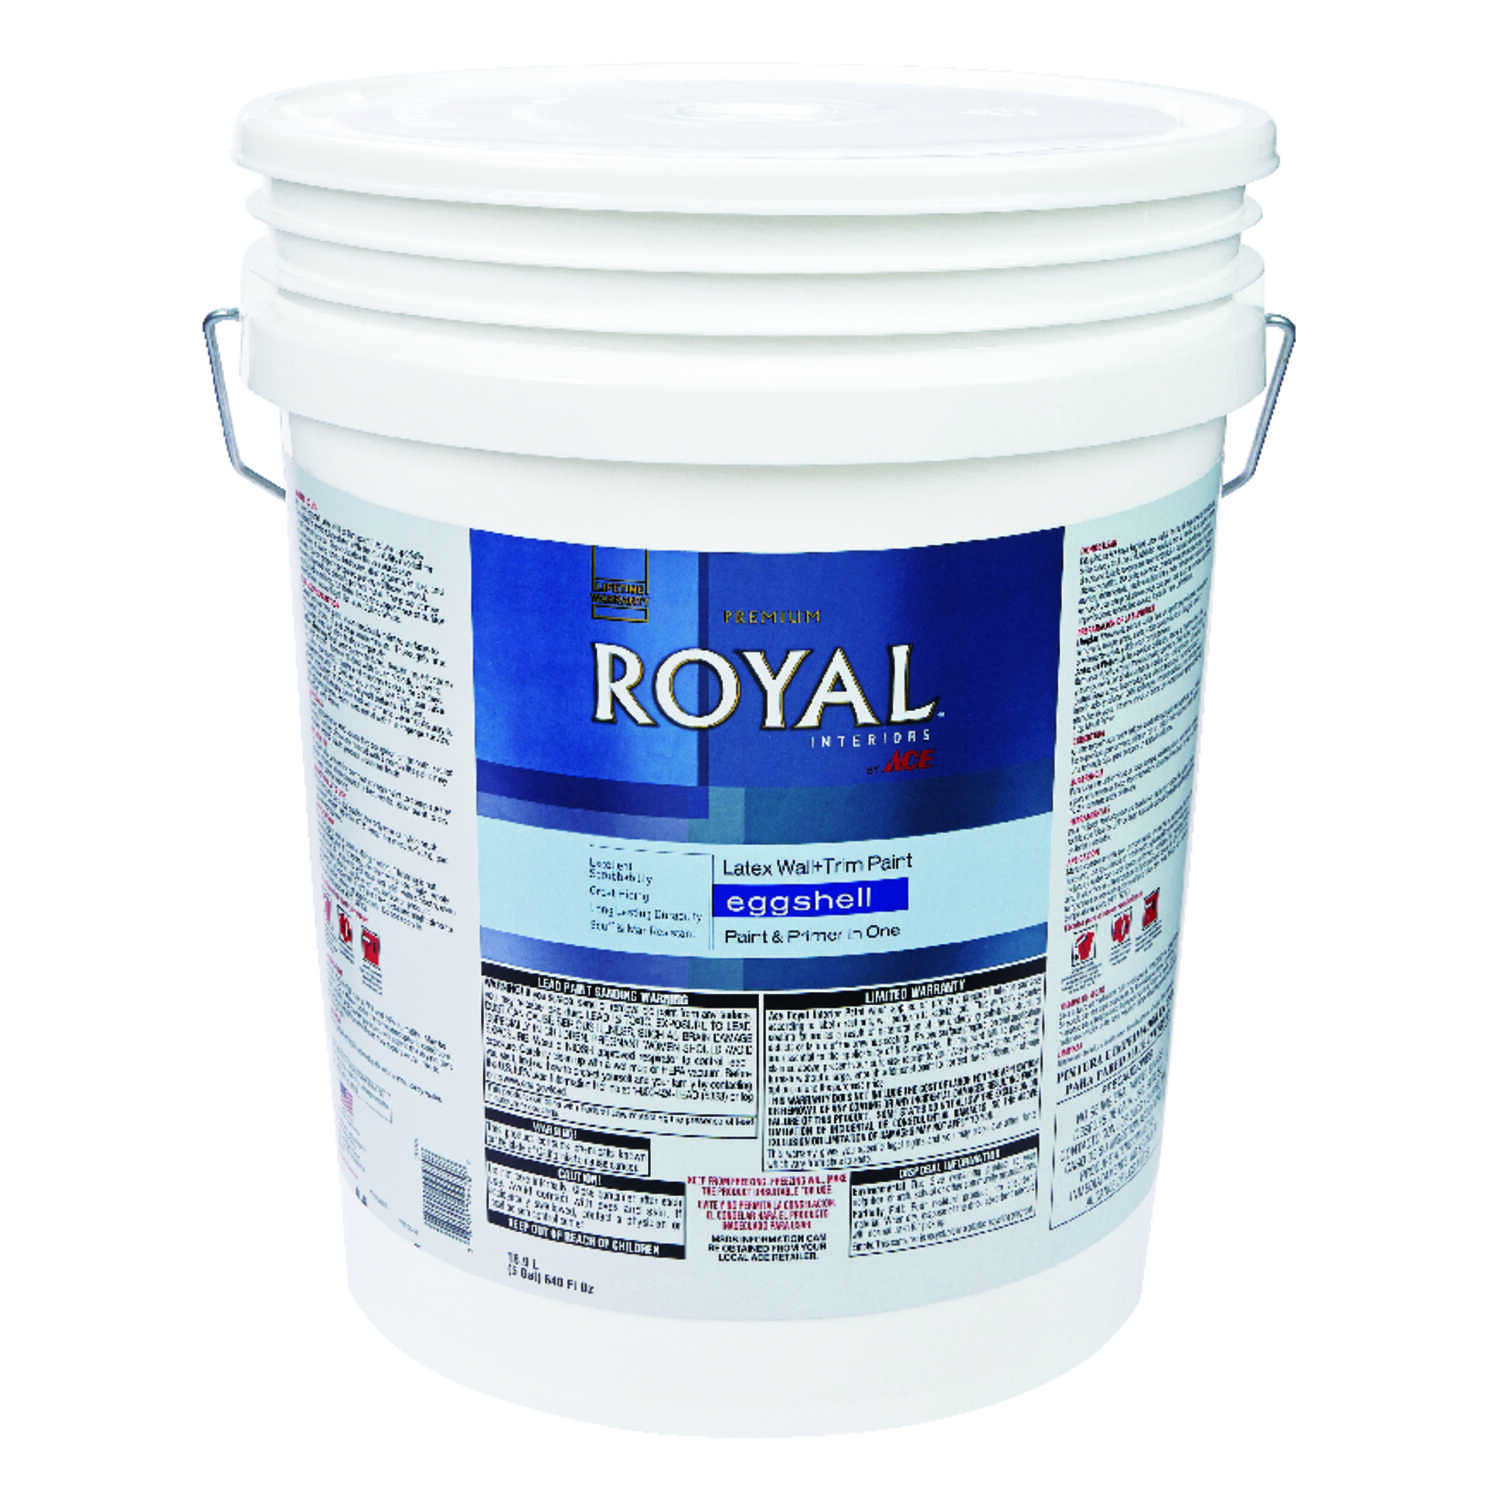 Ace  Royal  Eggshell  Vinyl Acetate/Ethylene  High Hiding White  5 gal. Interior Latex Wall+Trim Pai